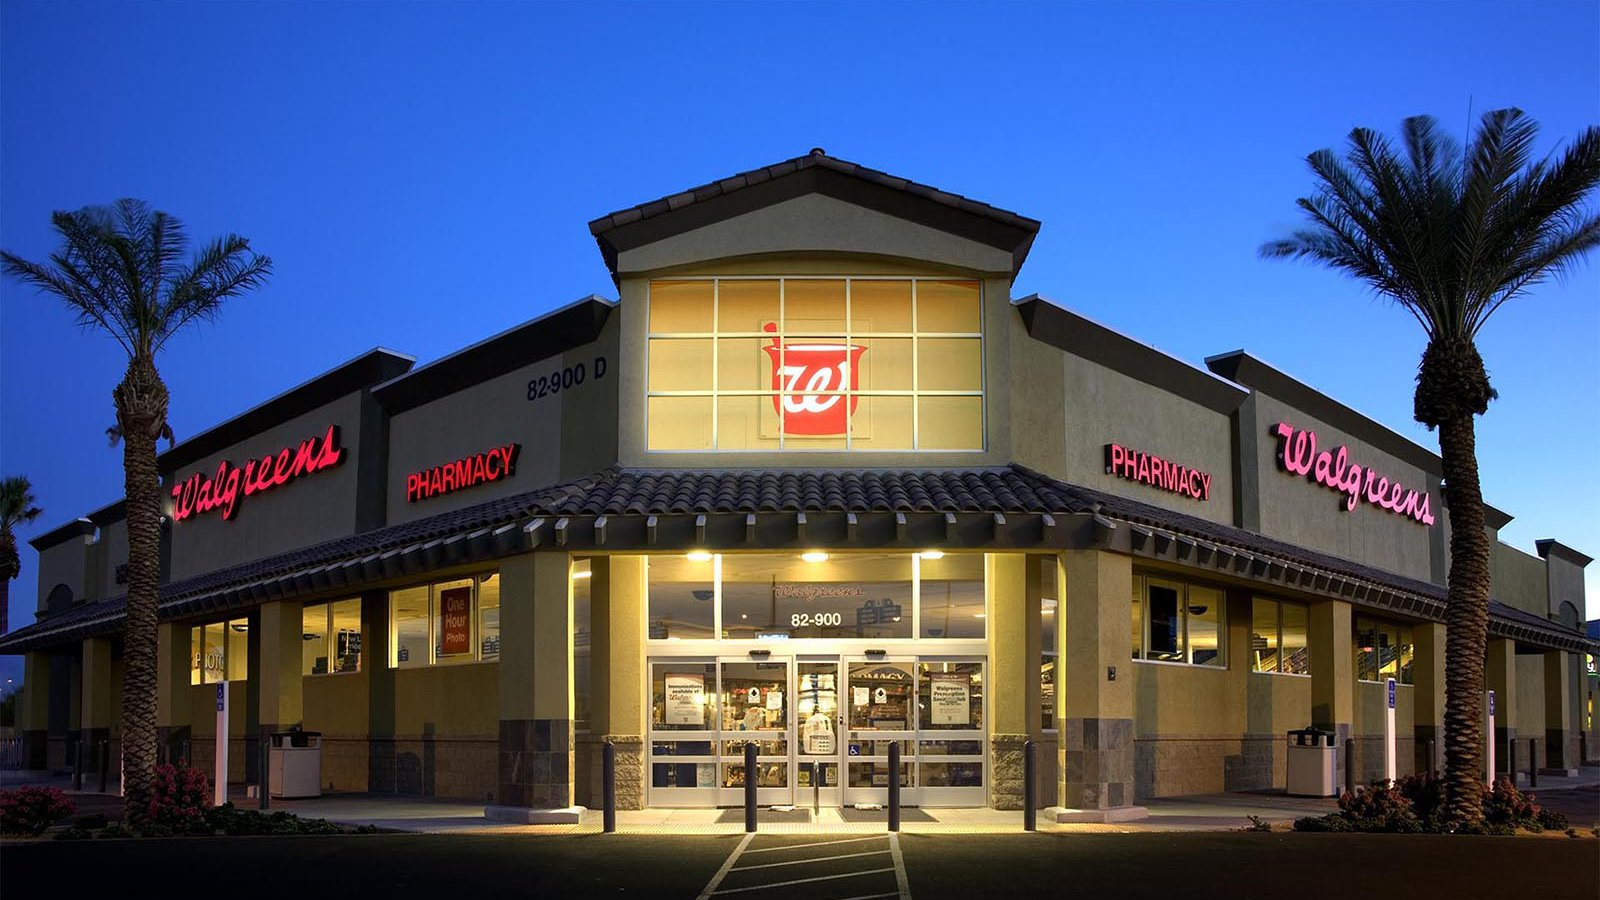 Exterior Architectural night photo of a Walgreens in Indio, California